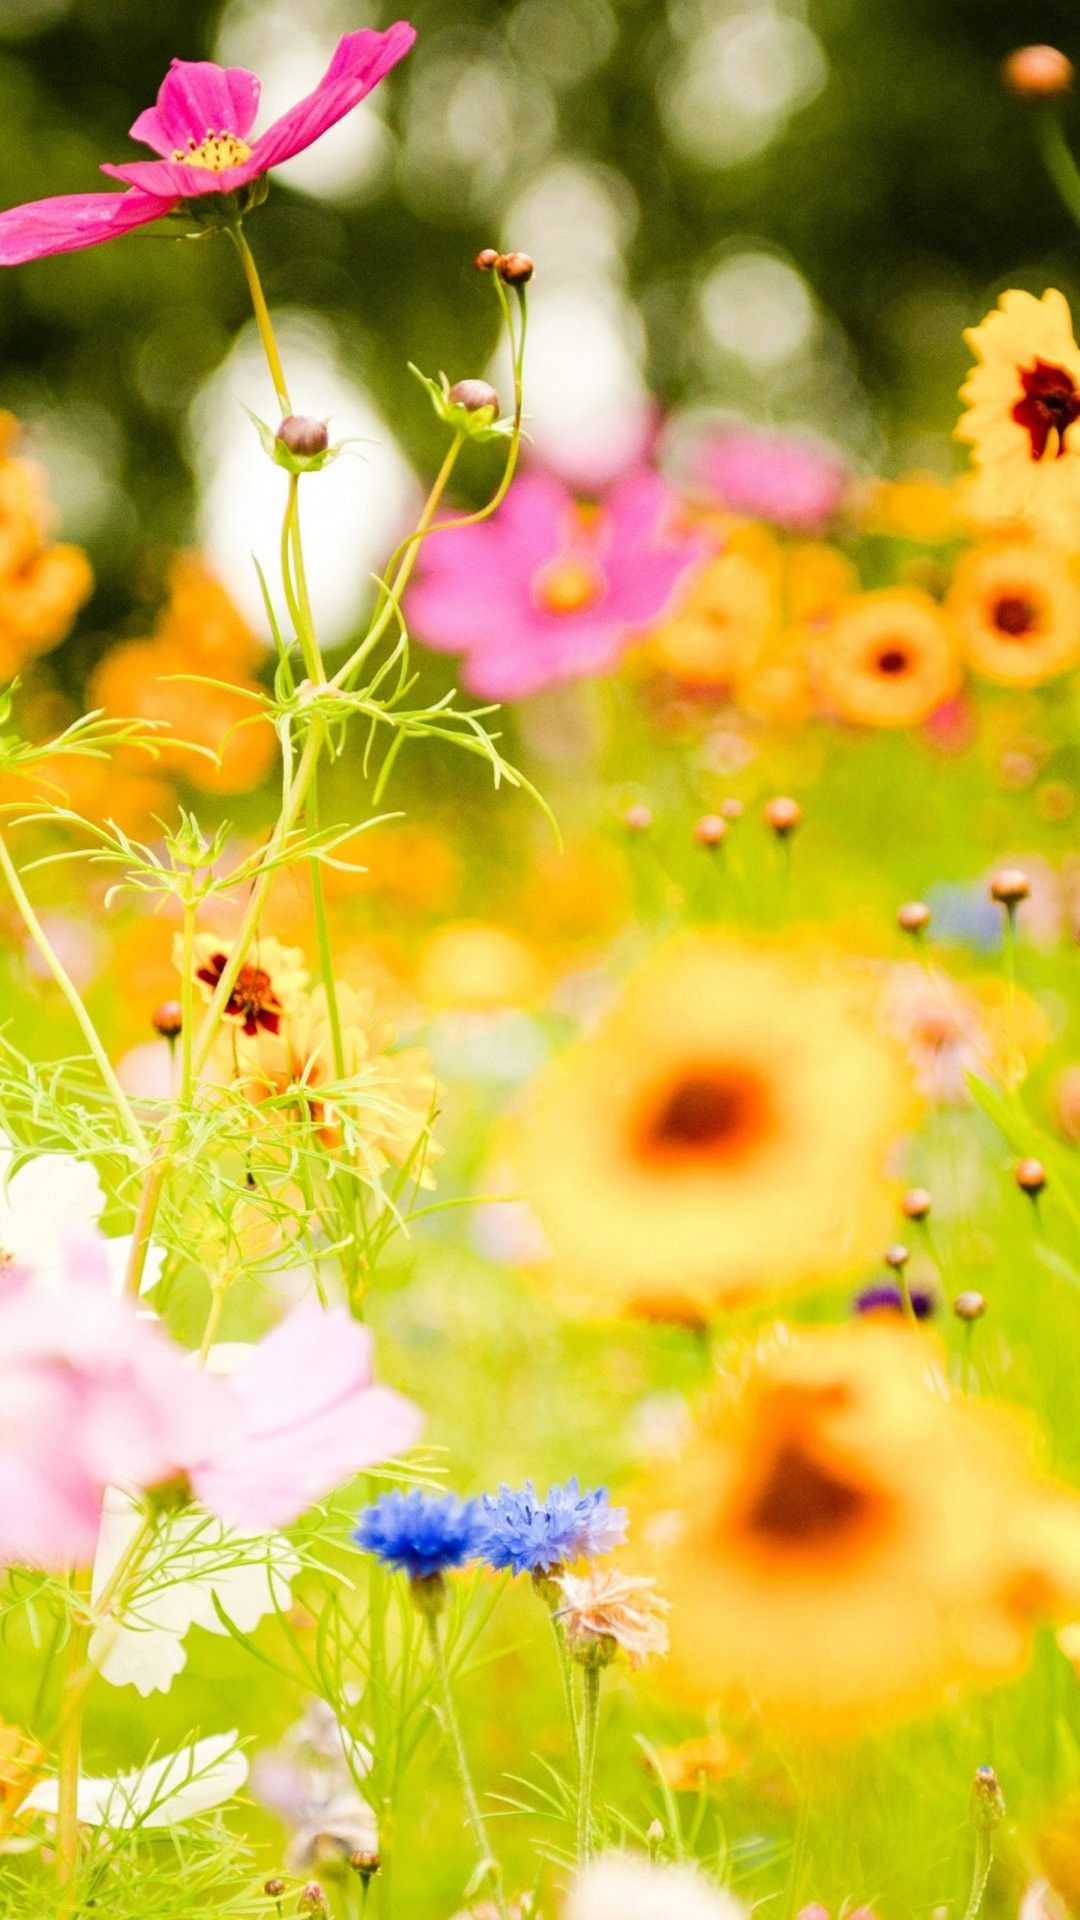 Flower pictures iphone 6 plus wallpaper 17025 flowers - Iphone 6 flower wallpaper ...